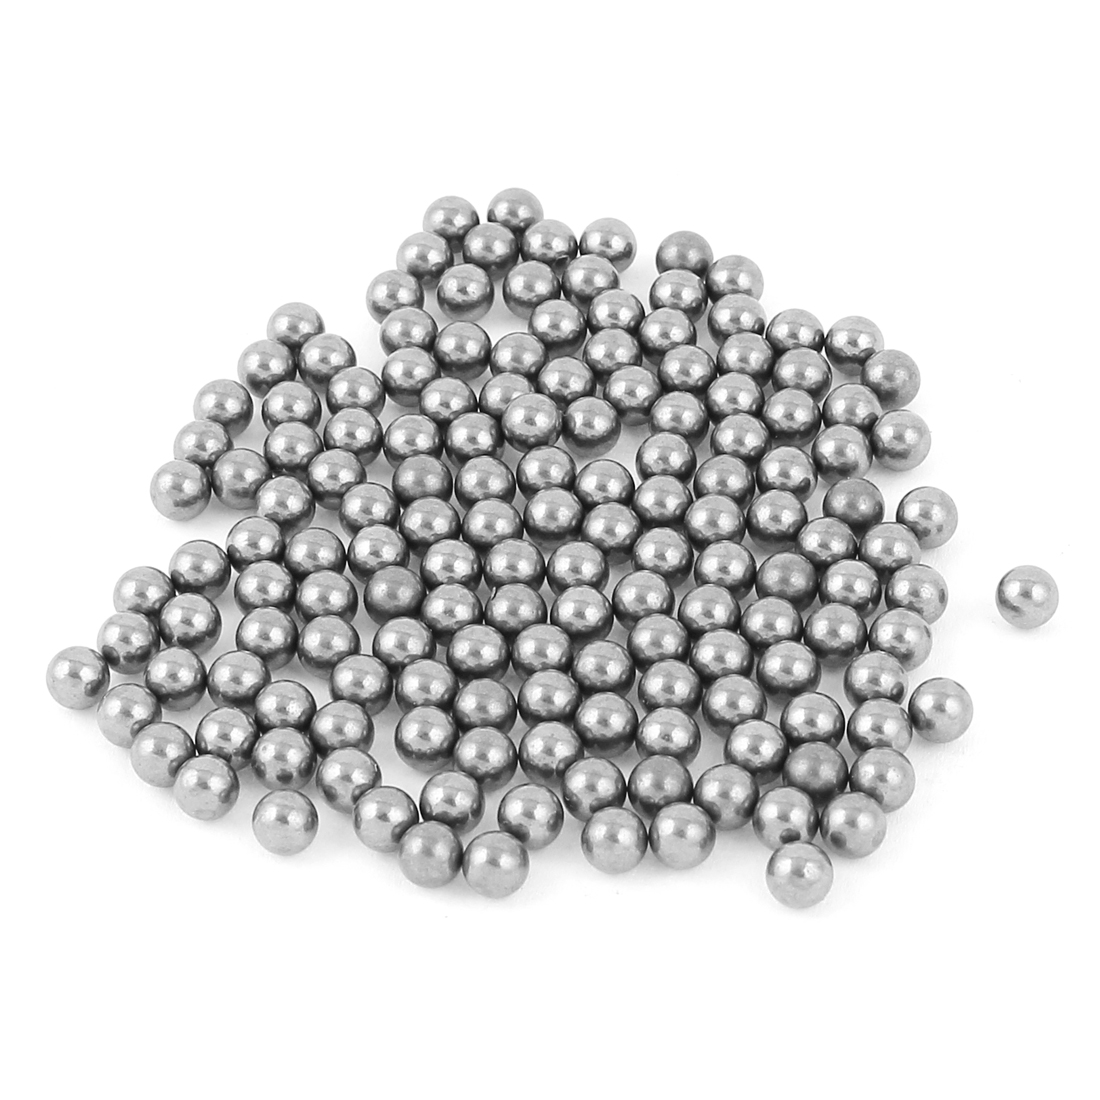 150pcs Carbon Steel Bike Bicycle Hardened Bearing Ball 5mm Gray